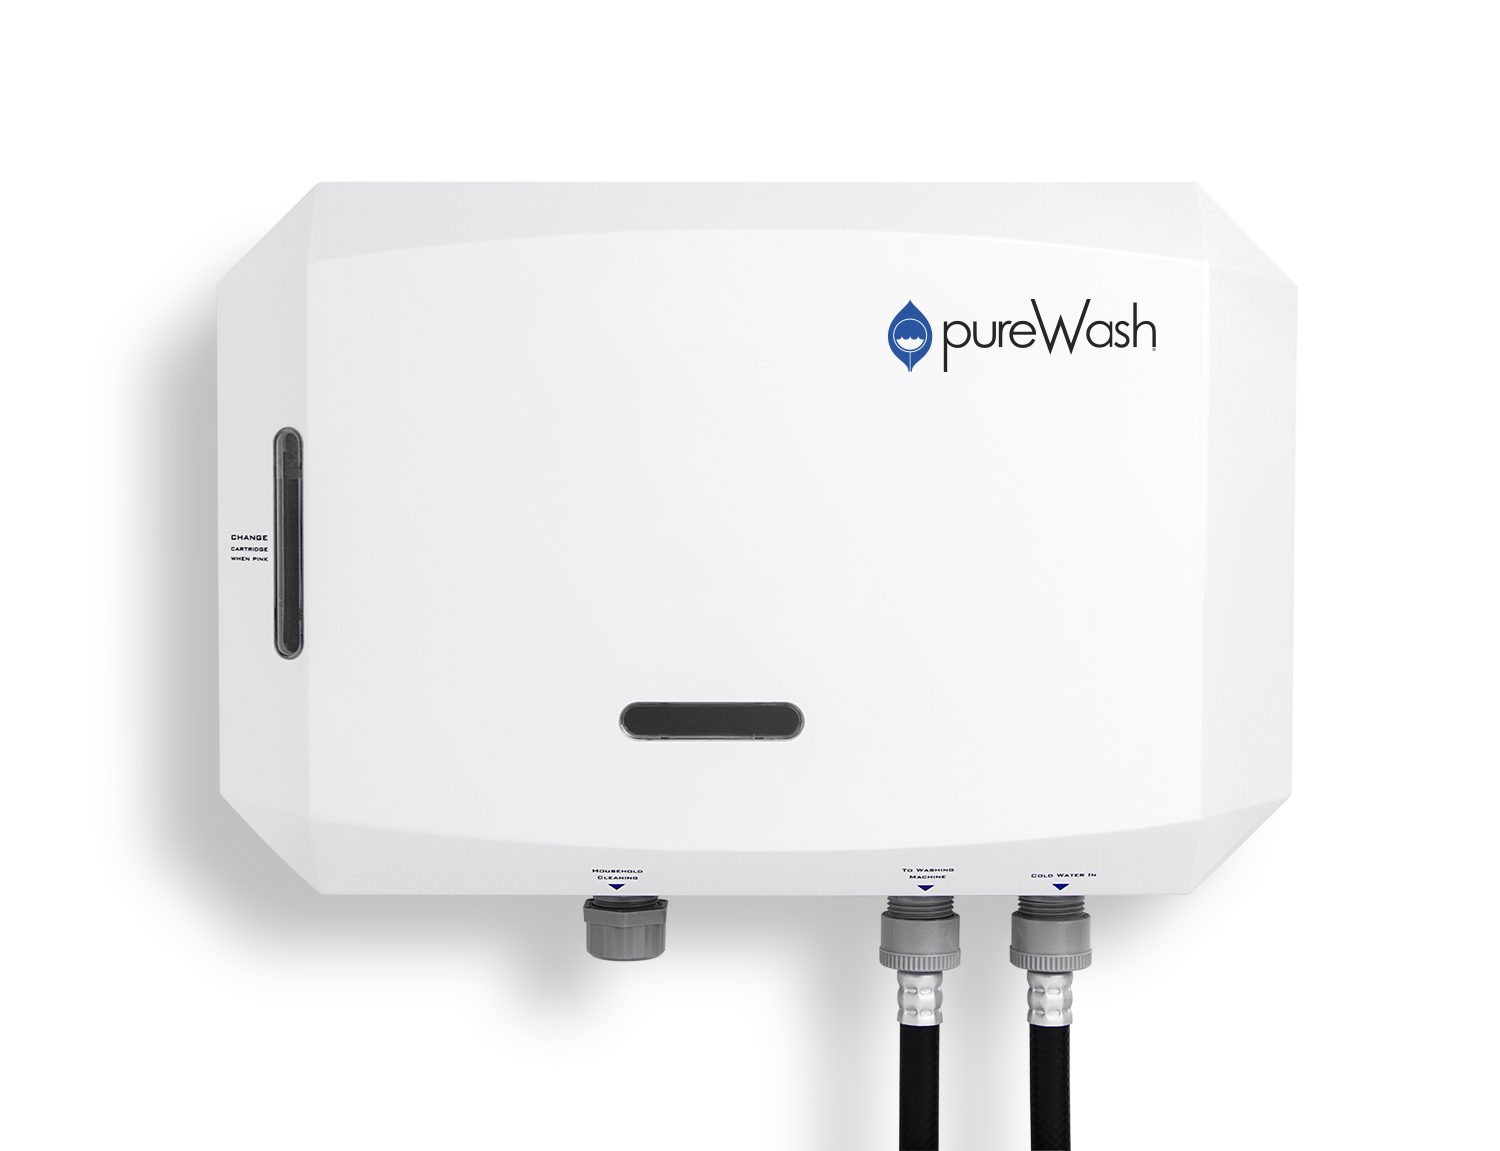 pureWASH Pro - Retail Price   Unit Only - Any installation parts or labor for installation not included